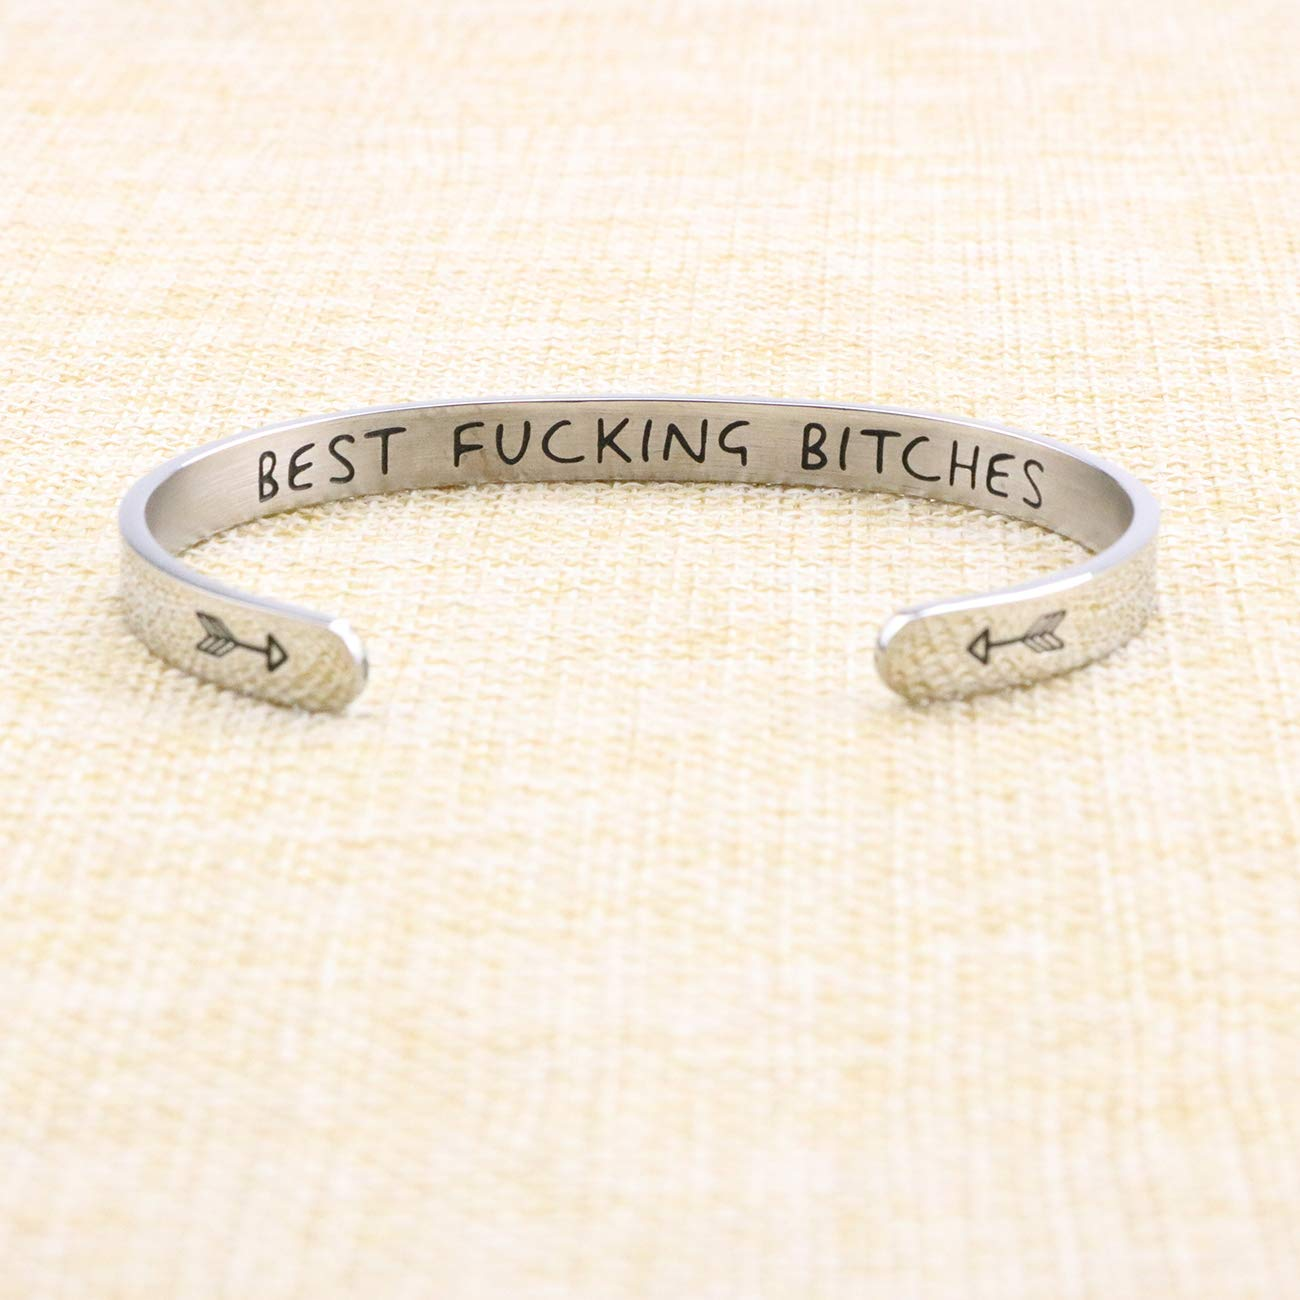 Yiyang Hand Stamped Bracelet Cuff Bangle for Women Wake Up Kick Ass Repeat Stainless Steel Feminist Jewelry